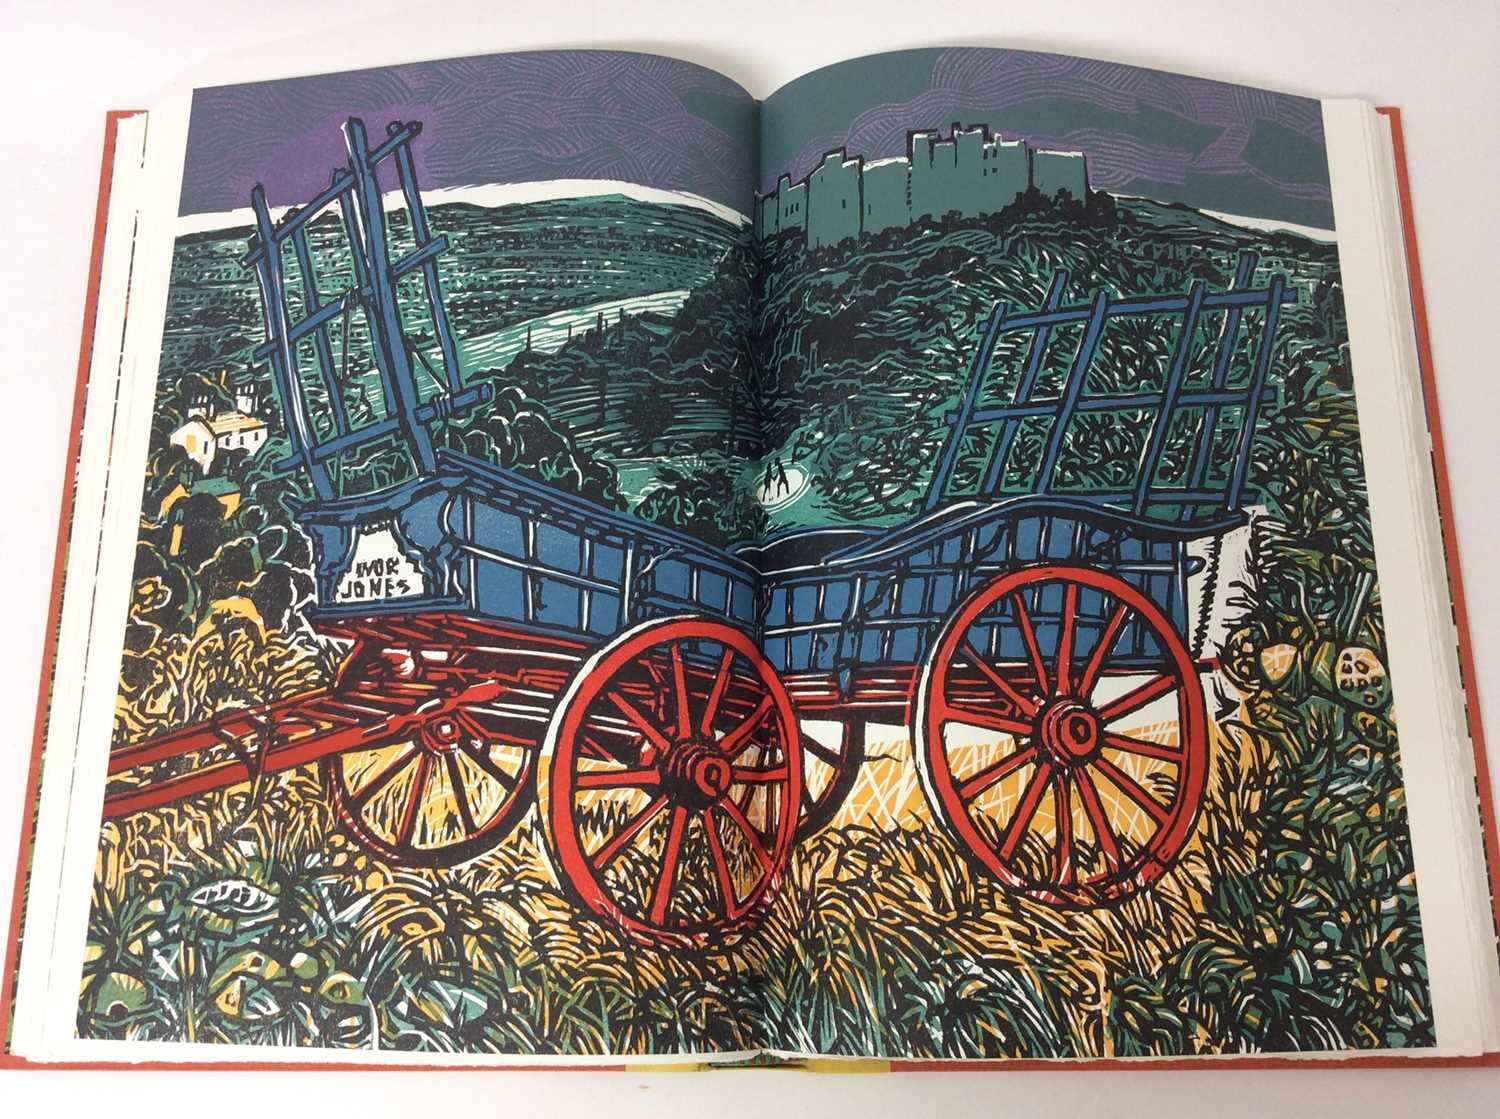 Pennant and His Welsh Landscape with woodcuts by Rigby Graham by Gregynog Press 2006, limited editio - Image 7 of 9